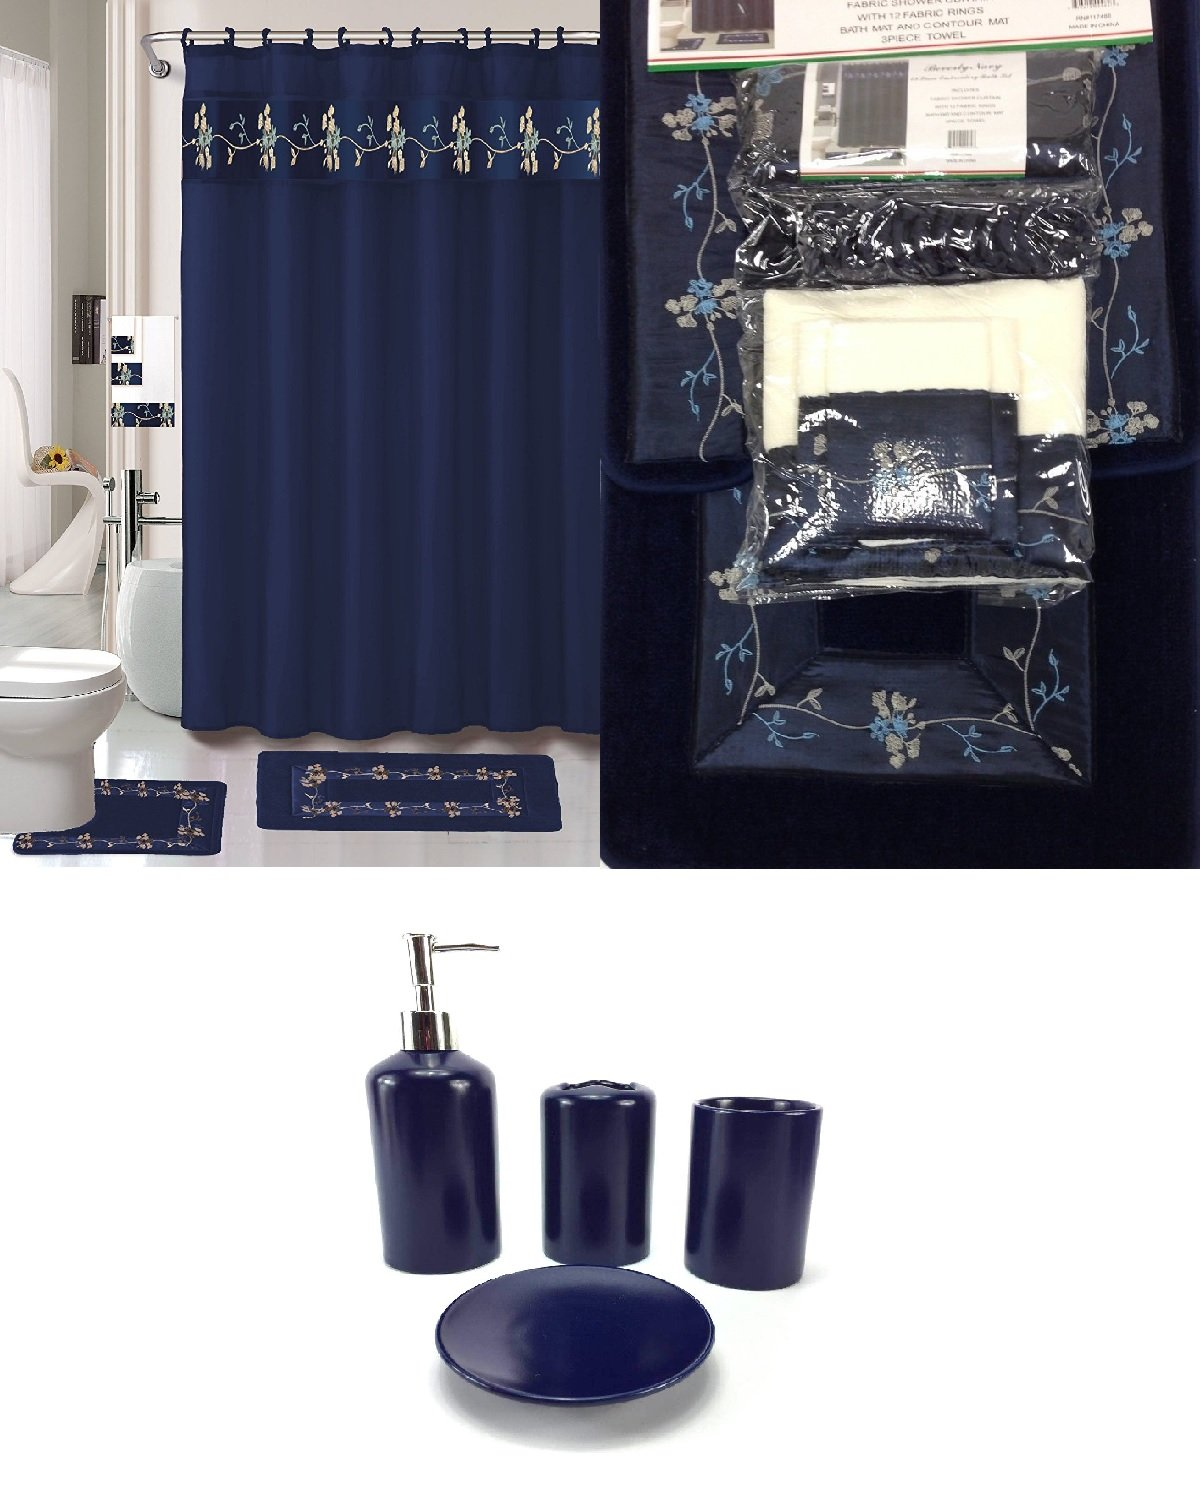 Amazon.com: 22 Piece Bath Accessory Set Navy Blue Flower Bathroom ...